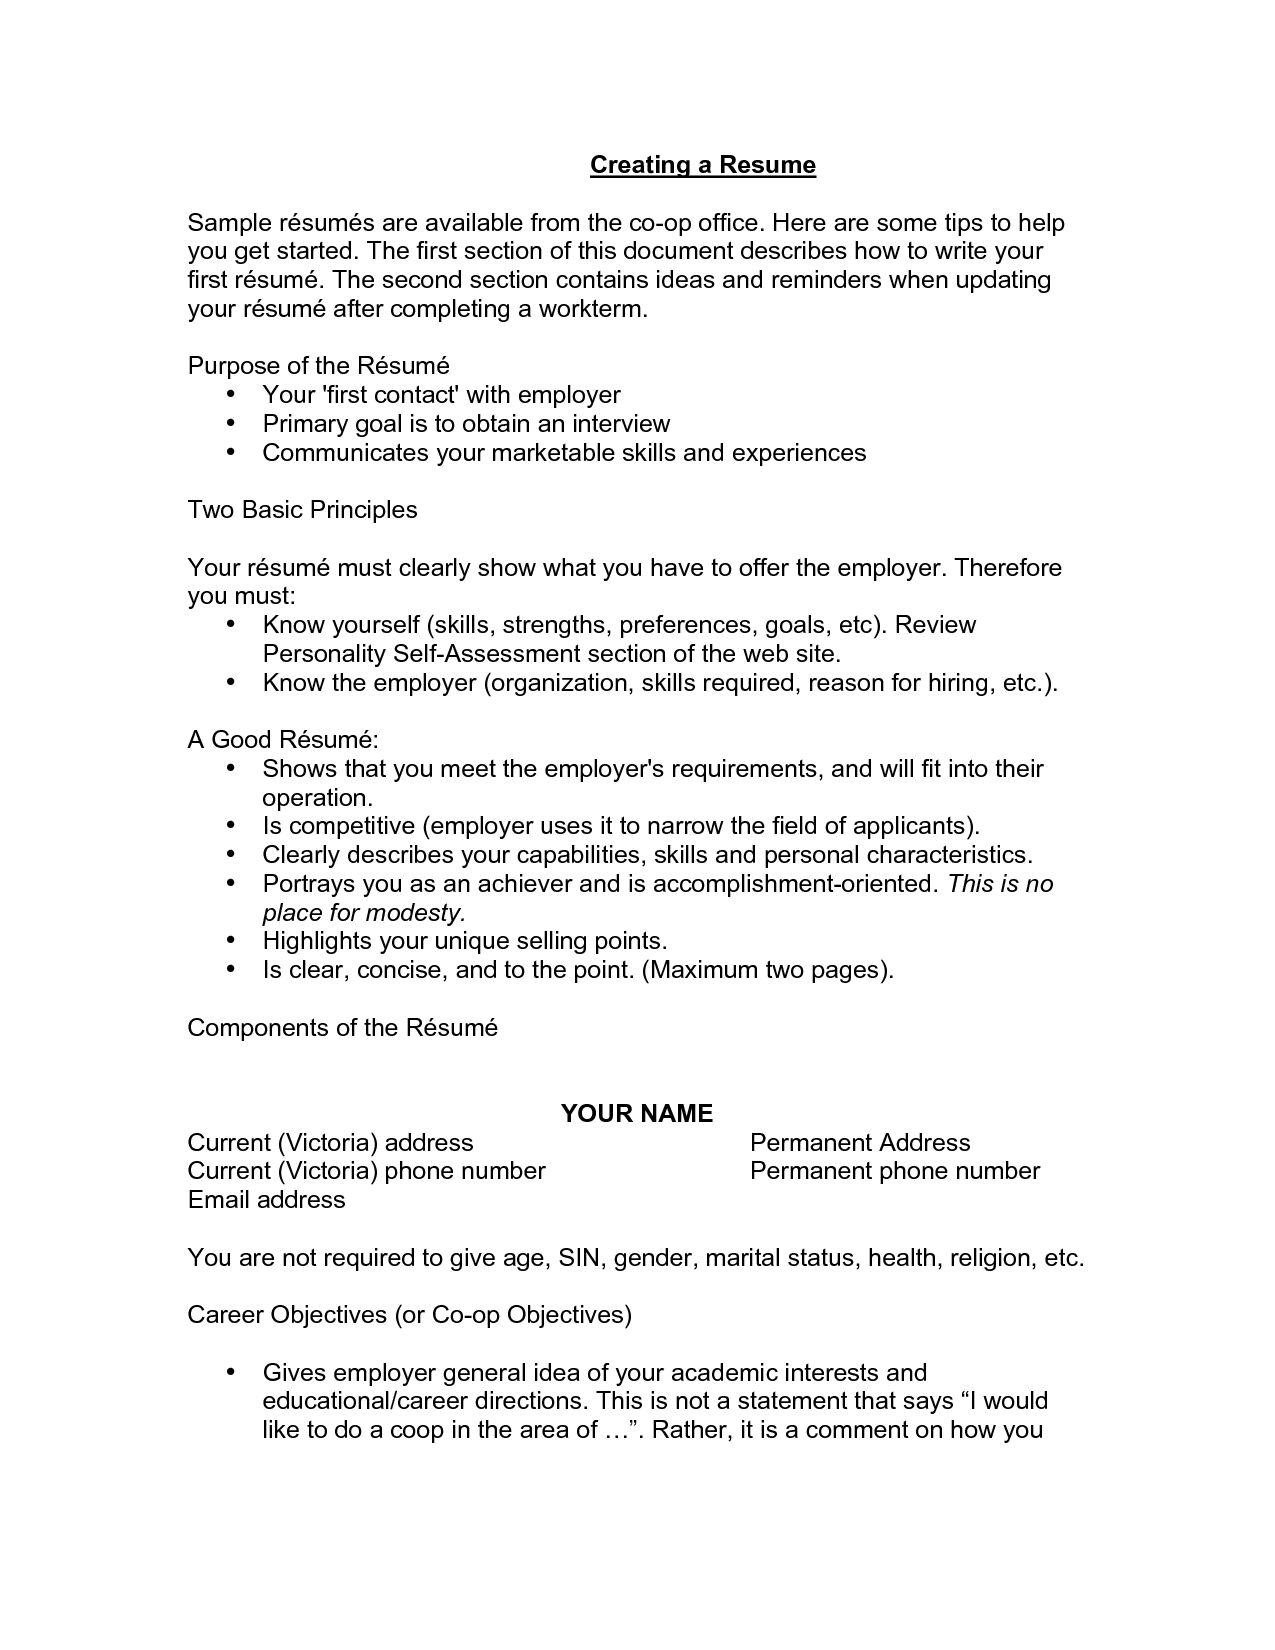 General Objectives For Resumes Objective For Resume Skylogic Examples Example Good Best Statement